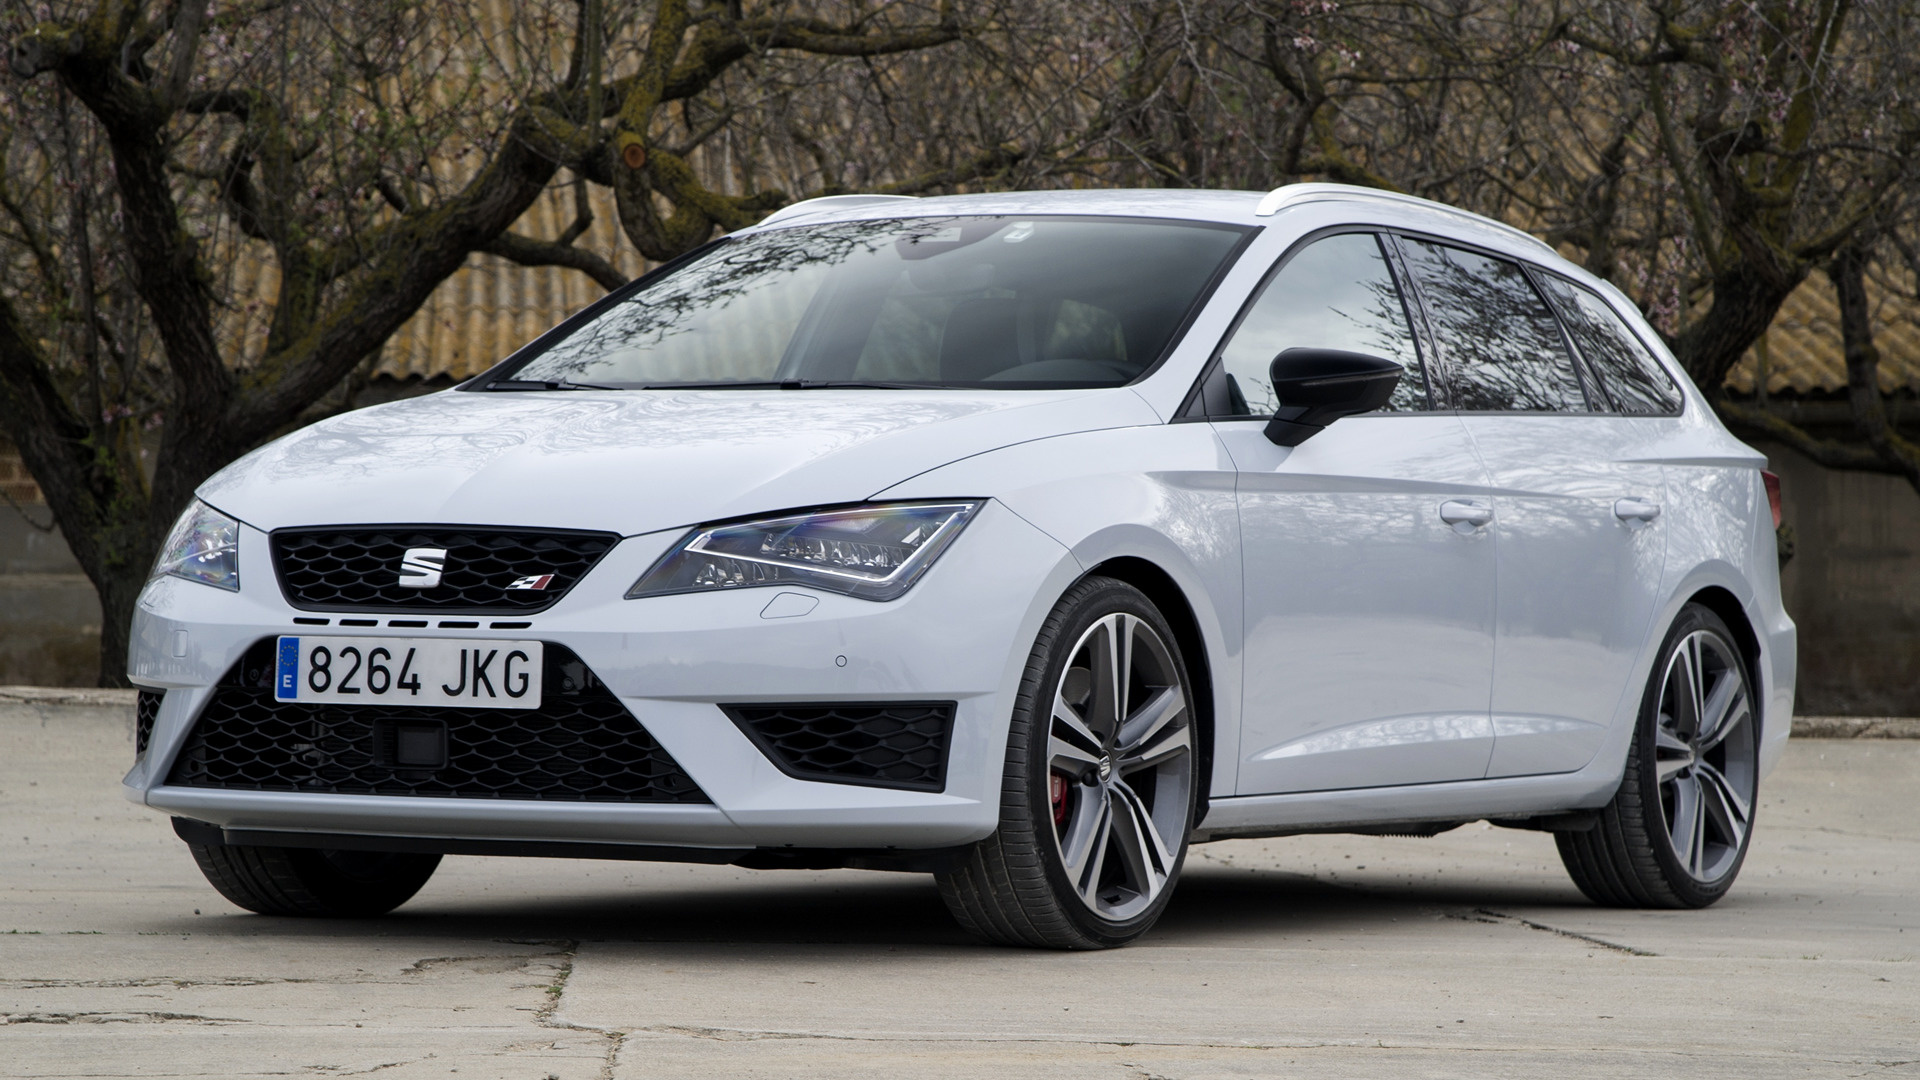 seat leon st cupra 290 2015 wallpapers and hd images car pixel. Black Bedroom Furniture Sets. Home Design Ideas